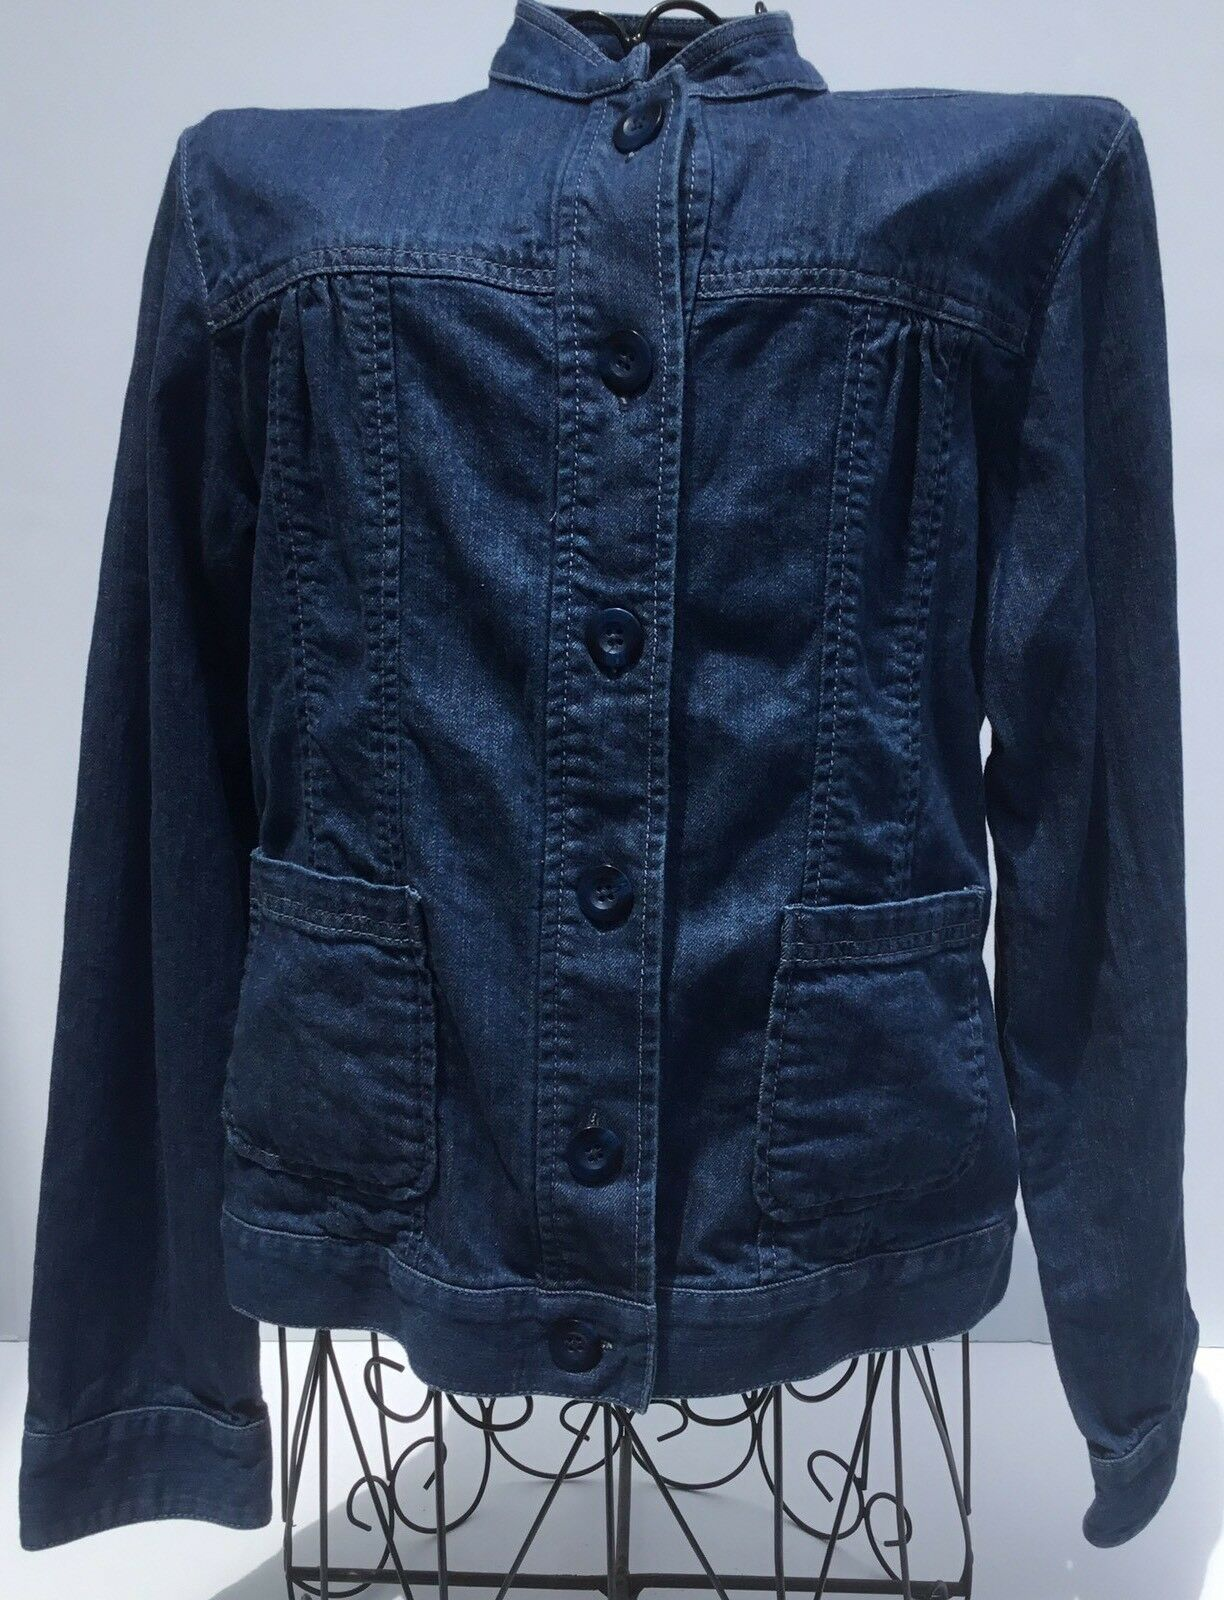 PENDLETON Women's Denim Jean Button Down bluee Shirt Size Small